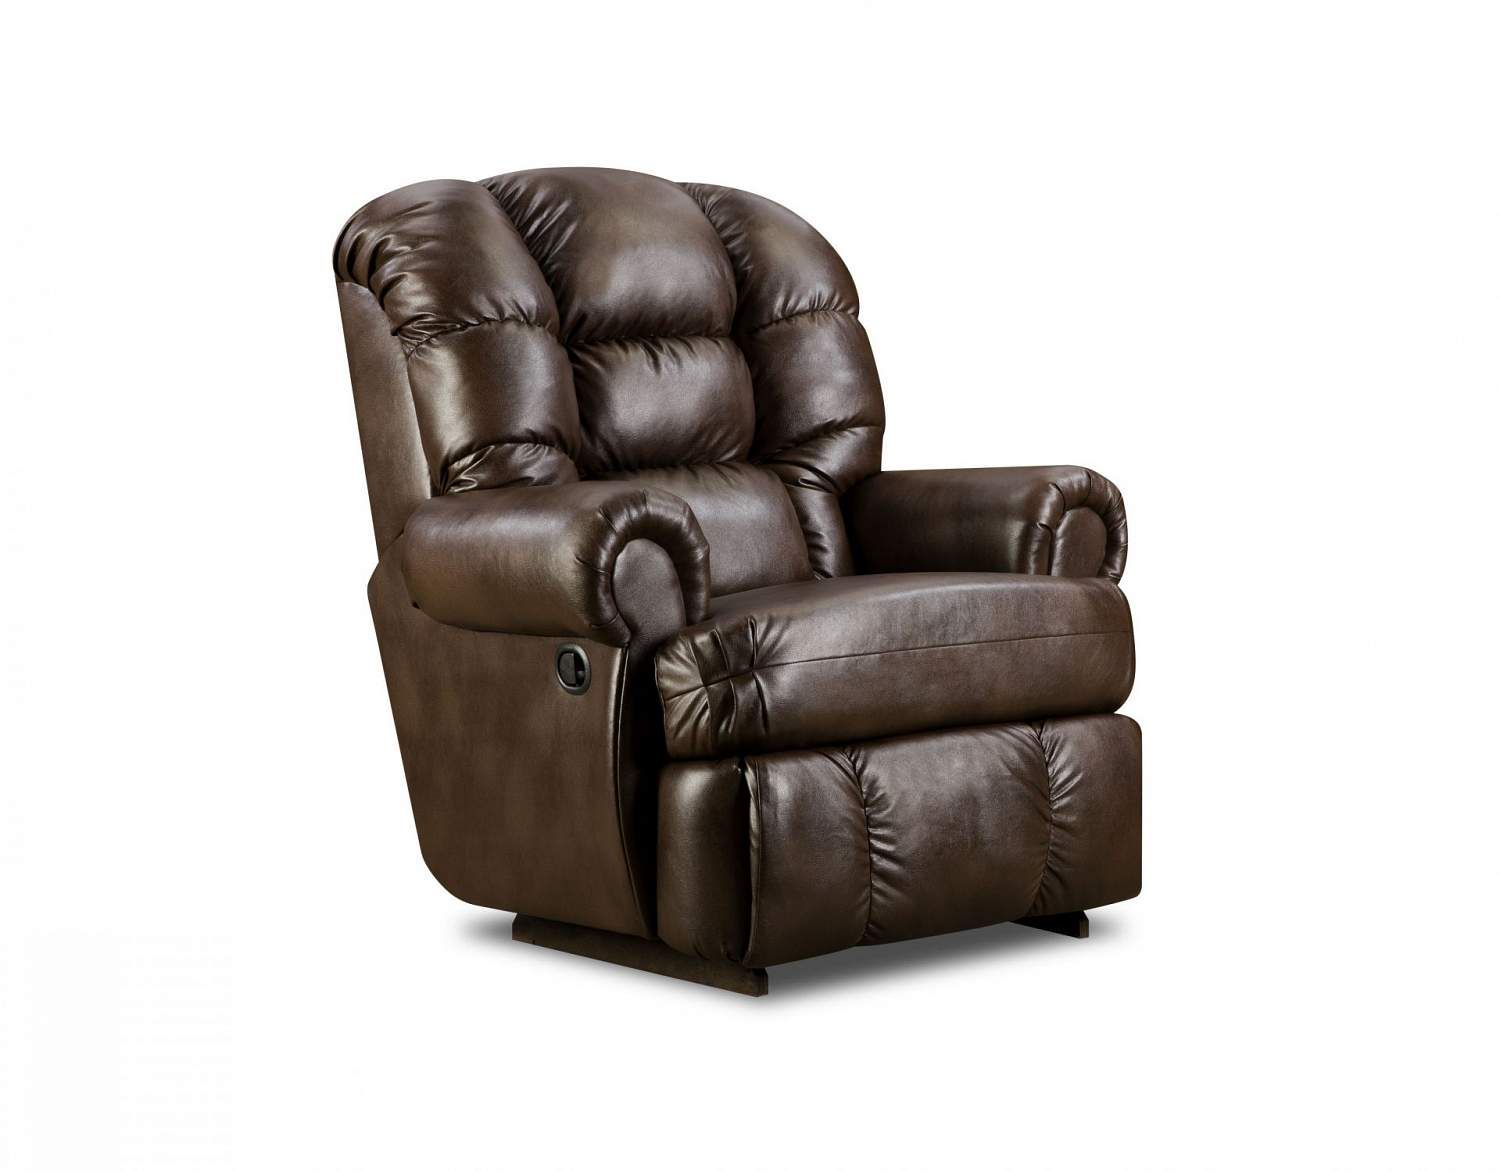 Wondrous Big Mans Power Recliner Ffo Home Recliners Recliner Evergreenethics Interior Chair Design Evergreenethicsorg